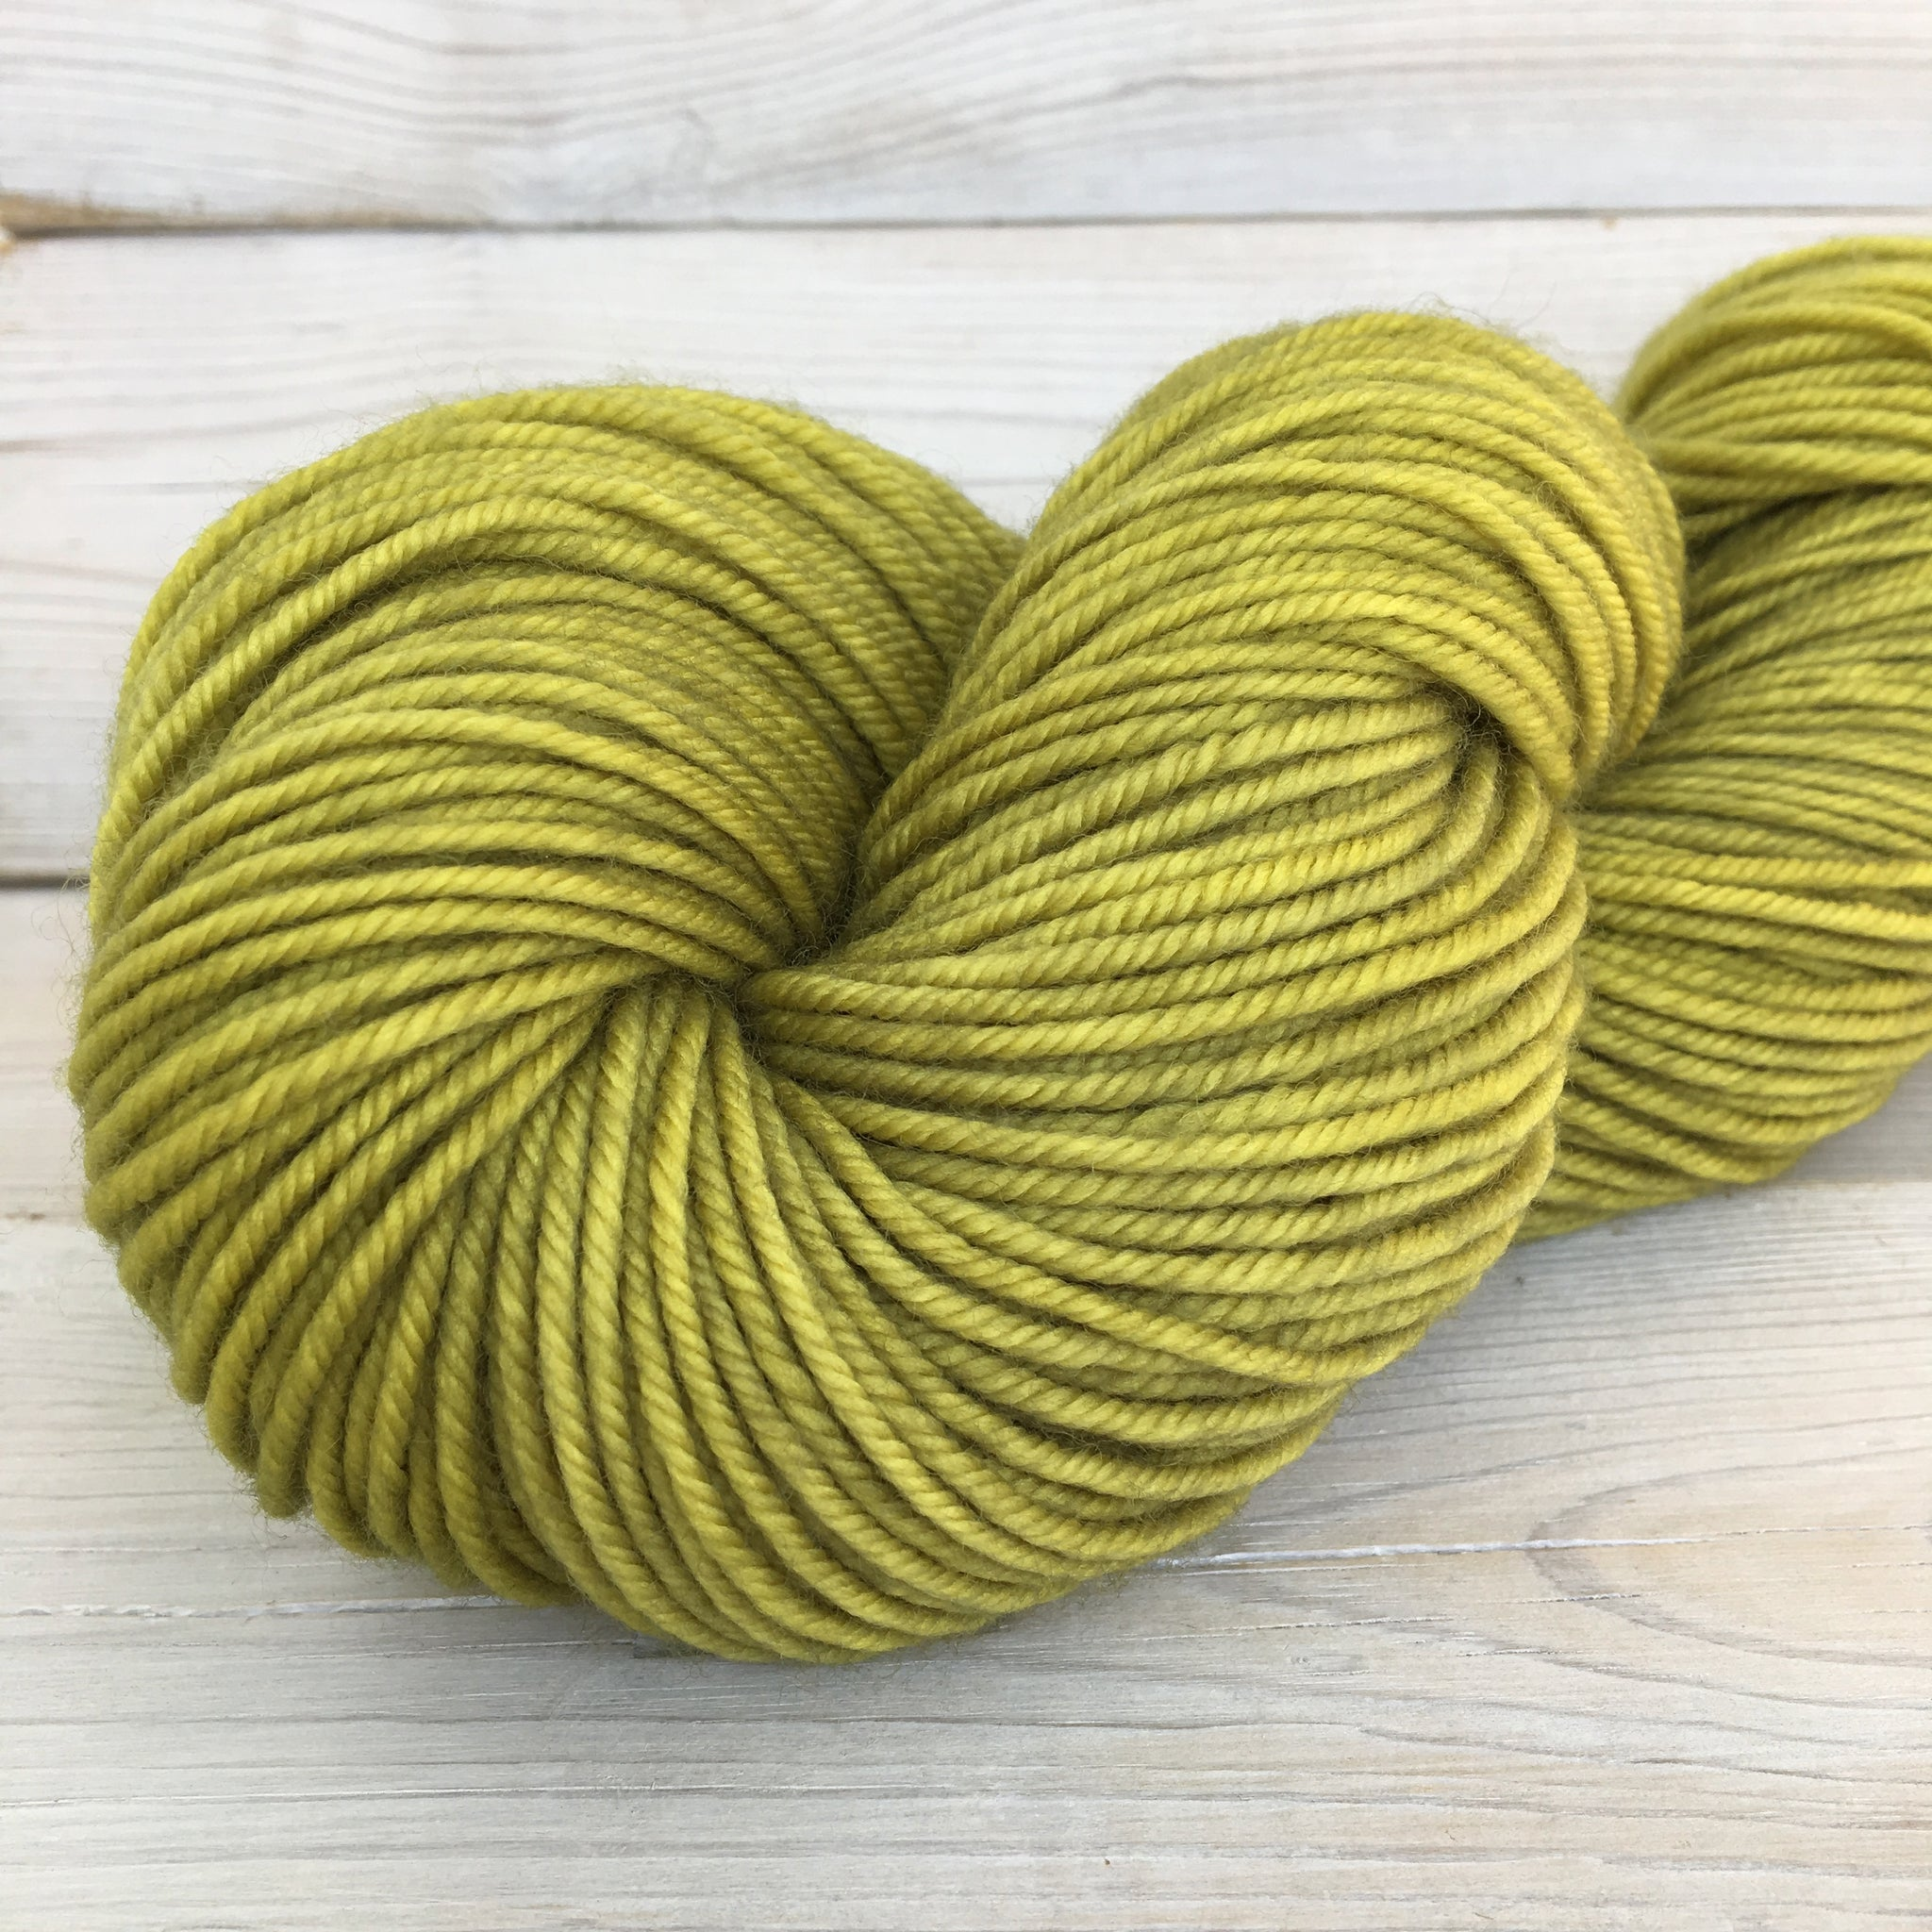 Colorway: Limelight | Dyed to Order Yarn